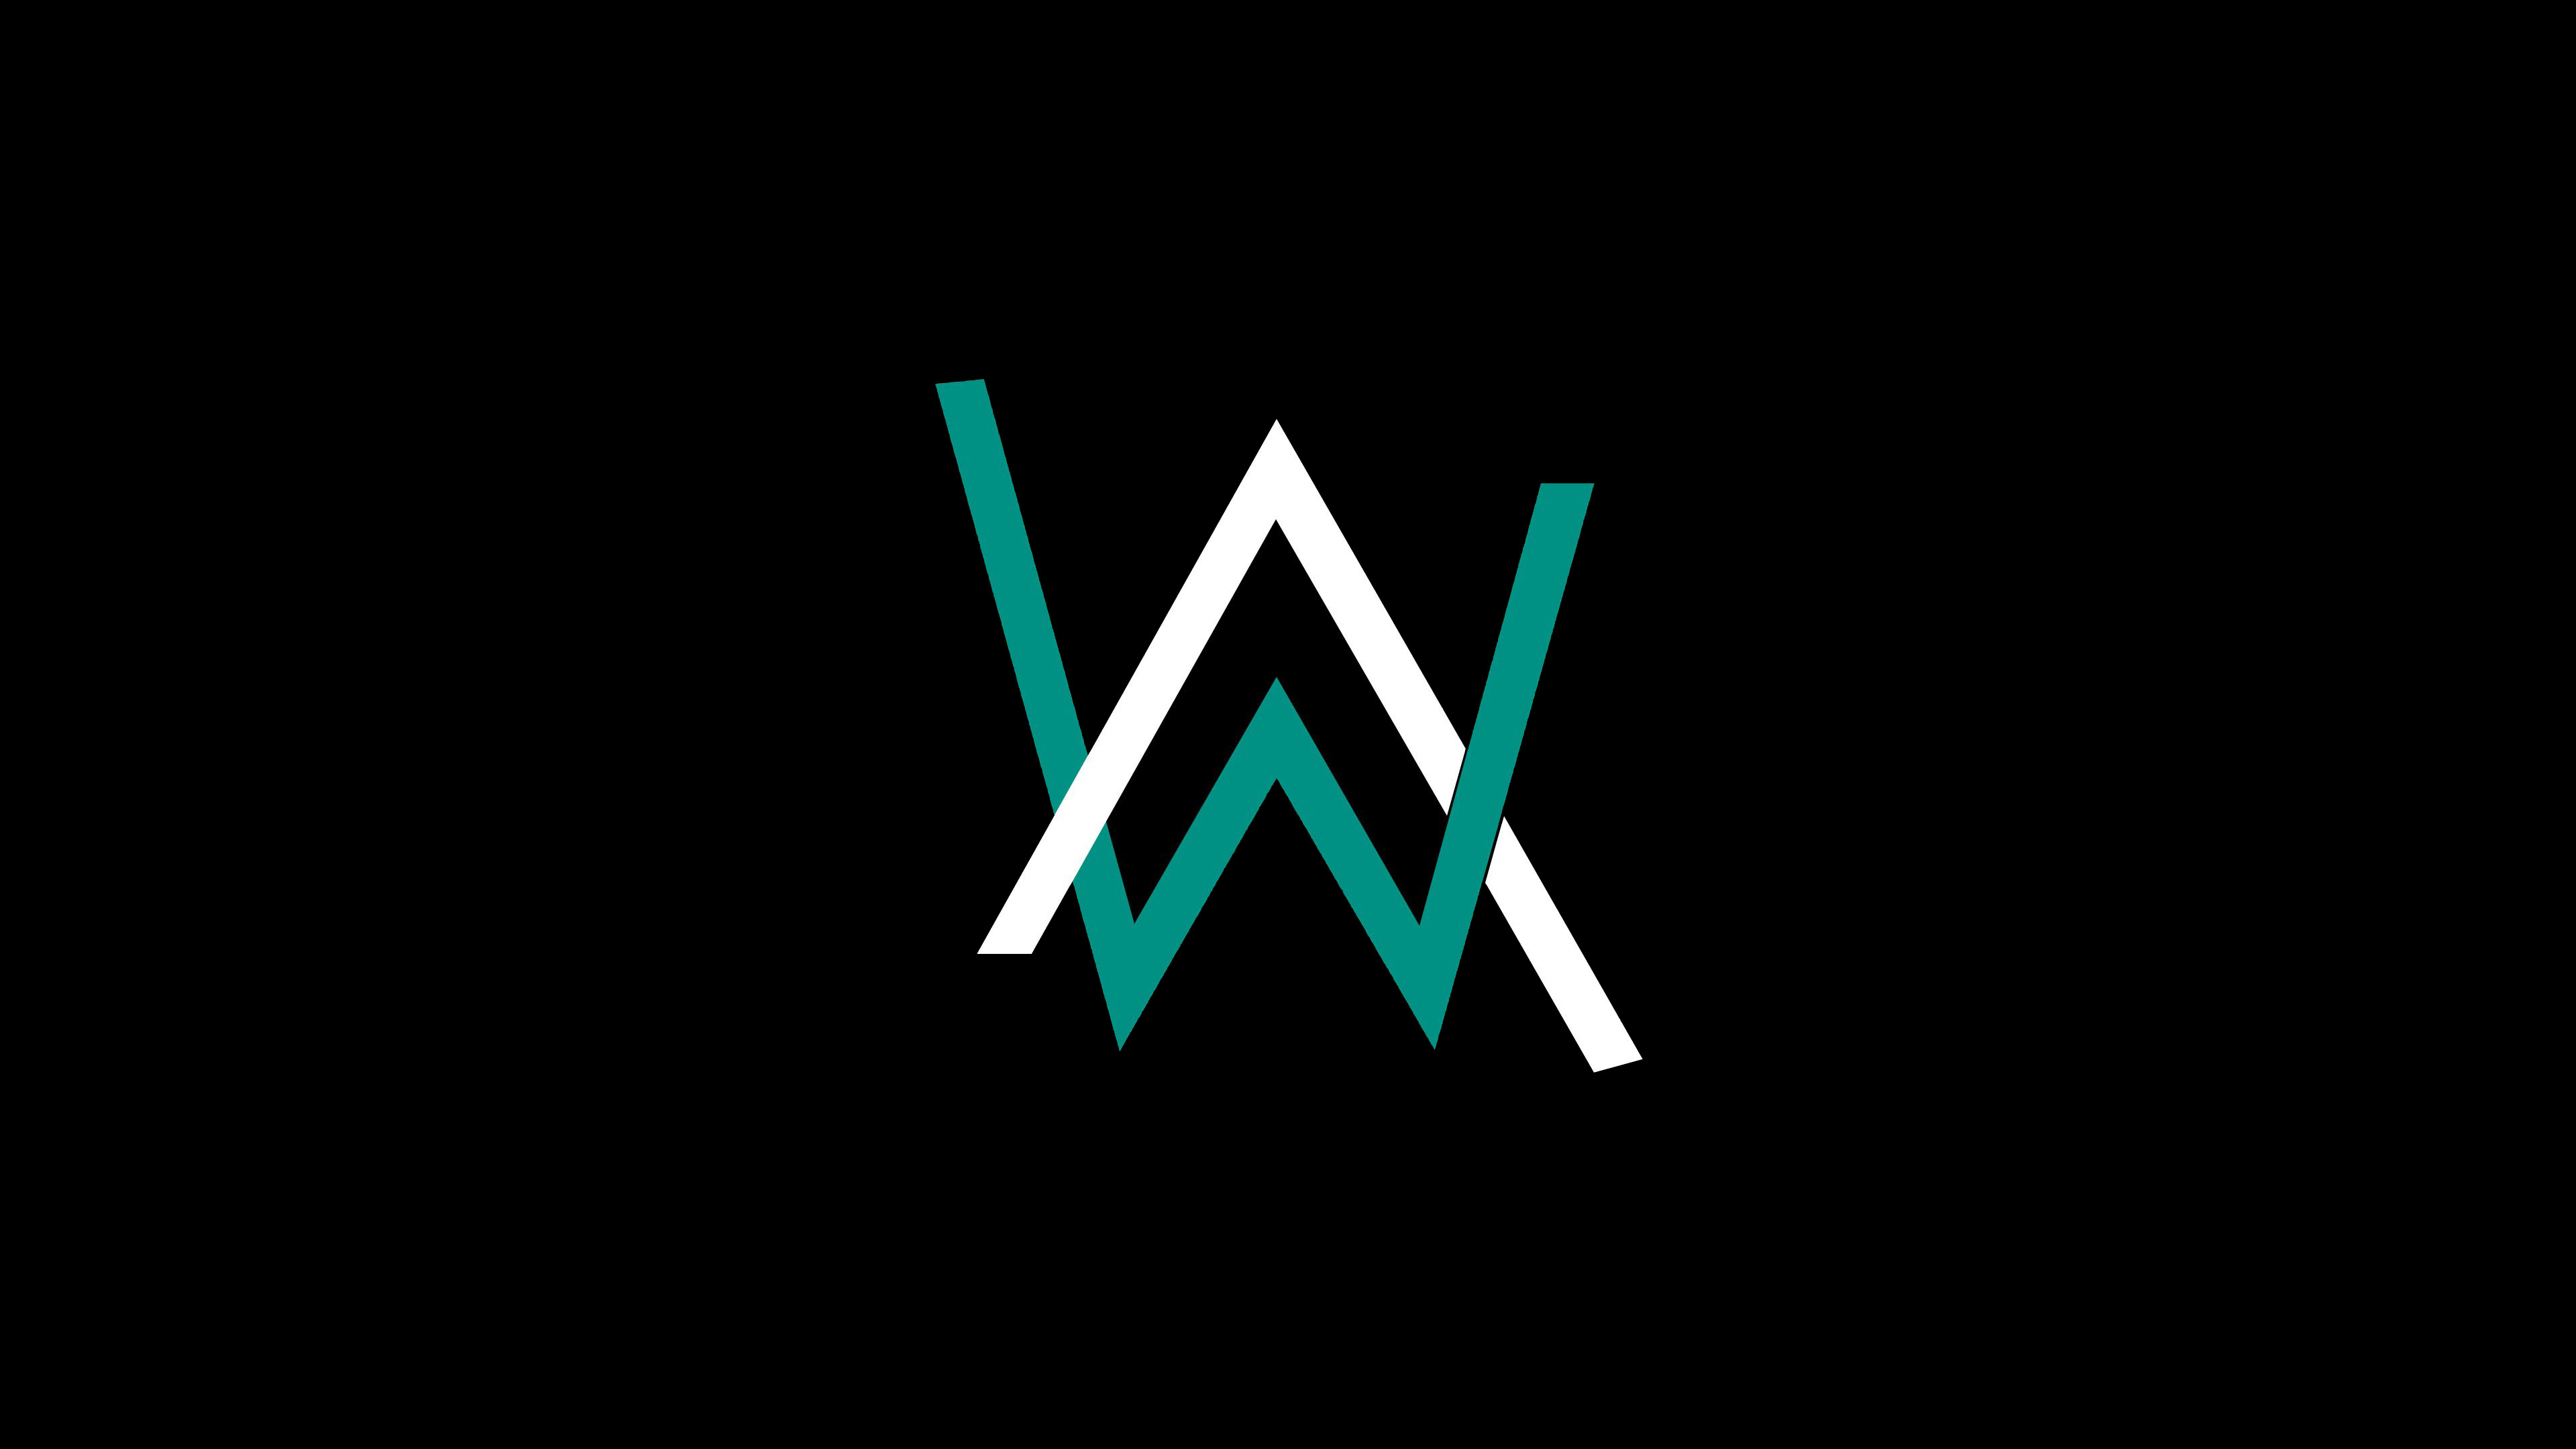 Alan Walker Logo 4k Hd Music 4k Wallpapers Images Backgrounds